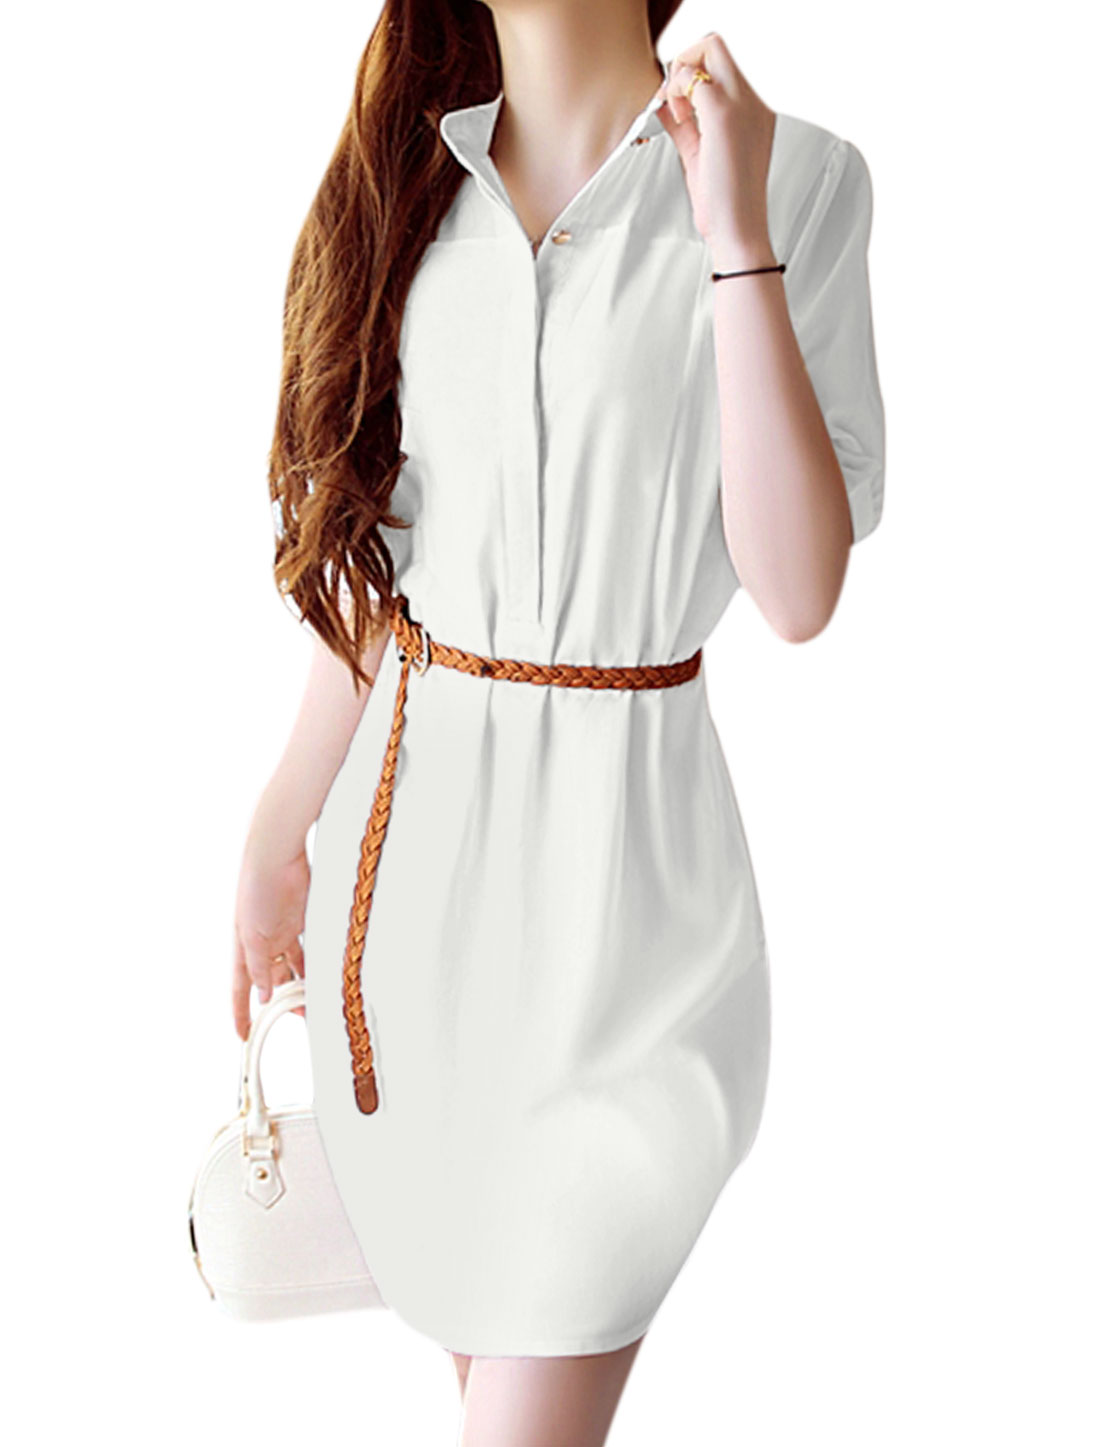 Lady Stand Collar Elbow Sleeve Round Hem Shirt Dress w Belt White M